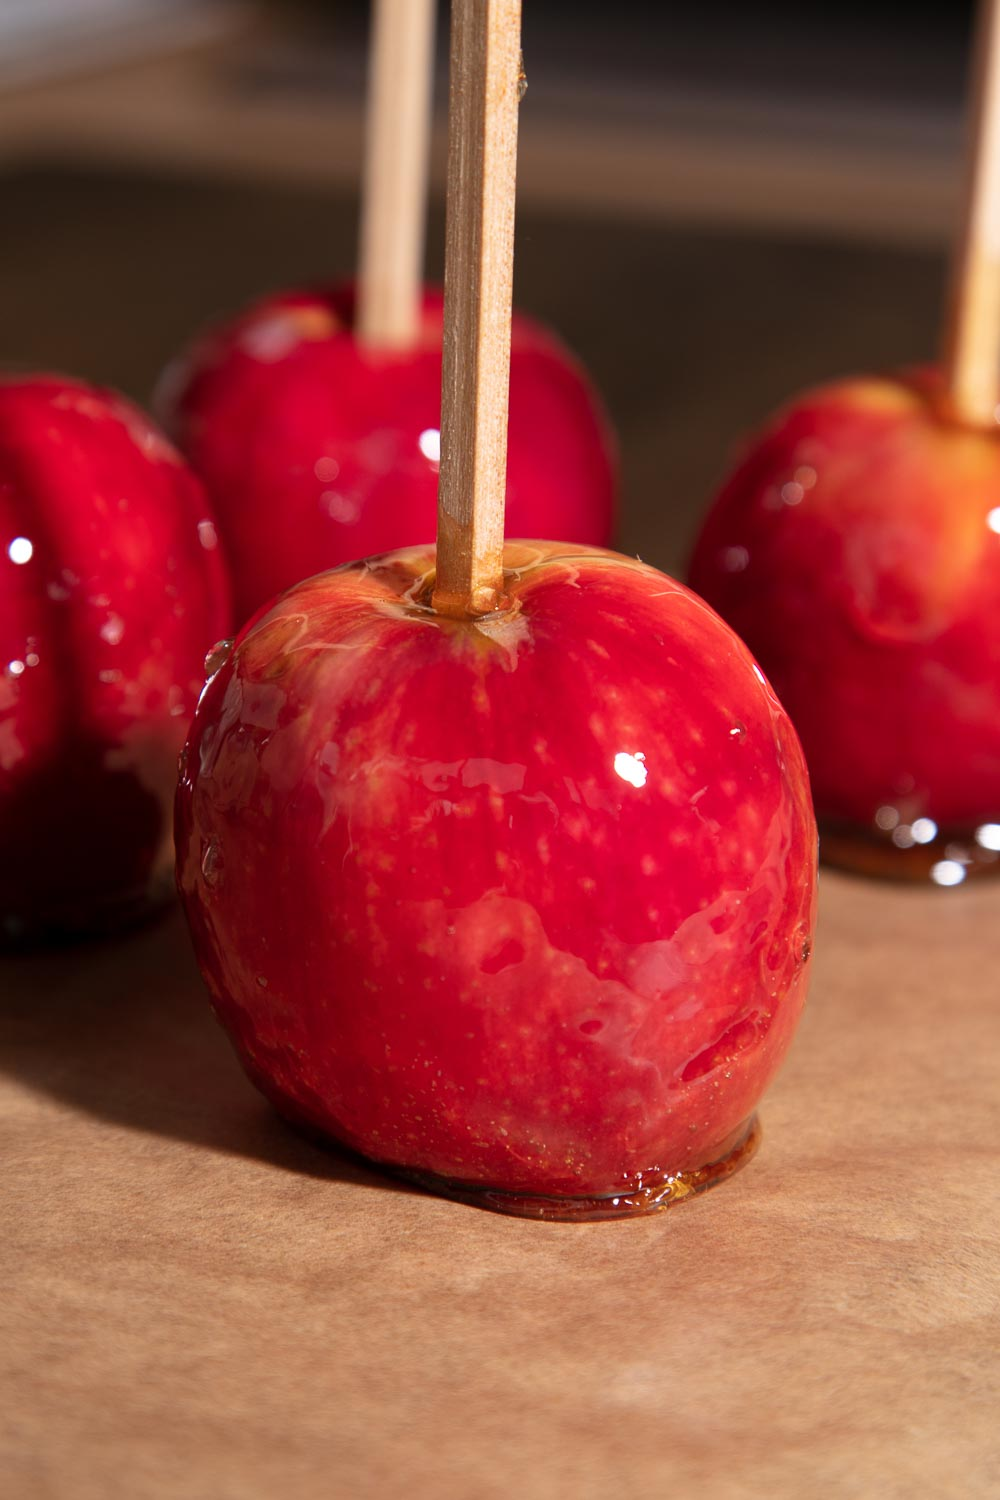 Shiny red toffee apples.